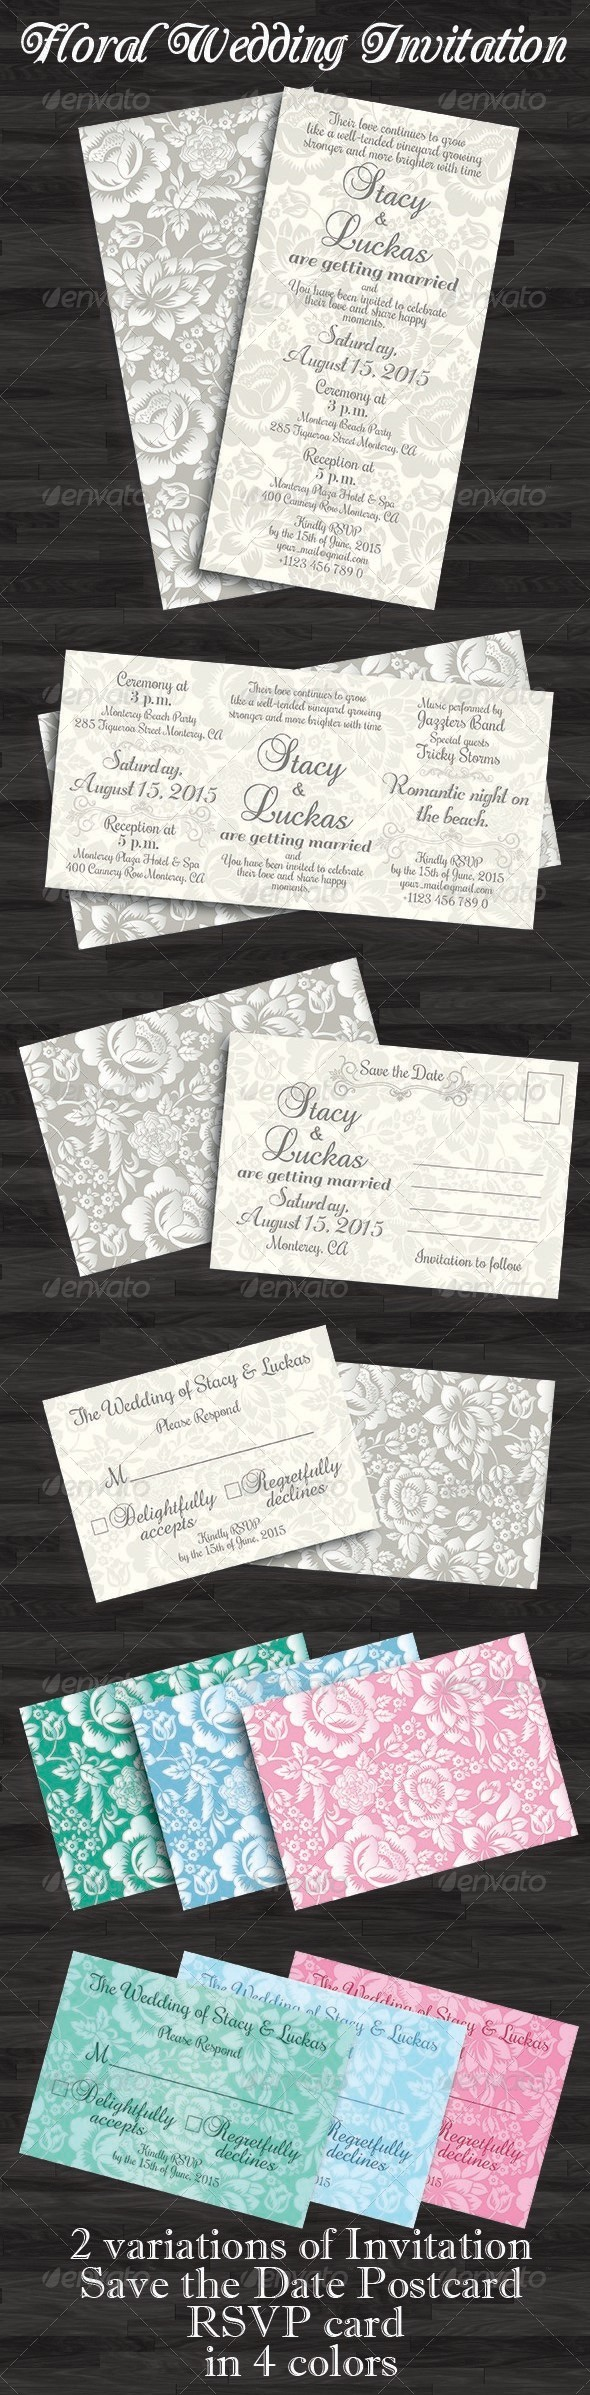 Floral Wedding Invitation, Save the Date & RSVP